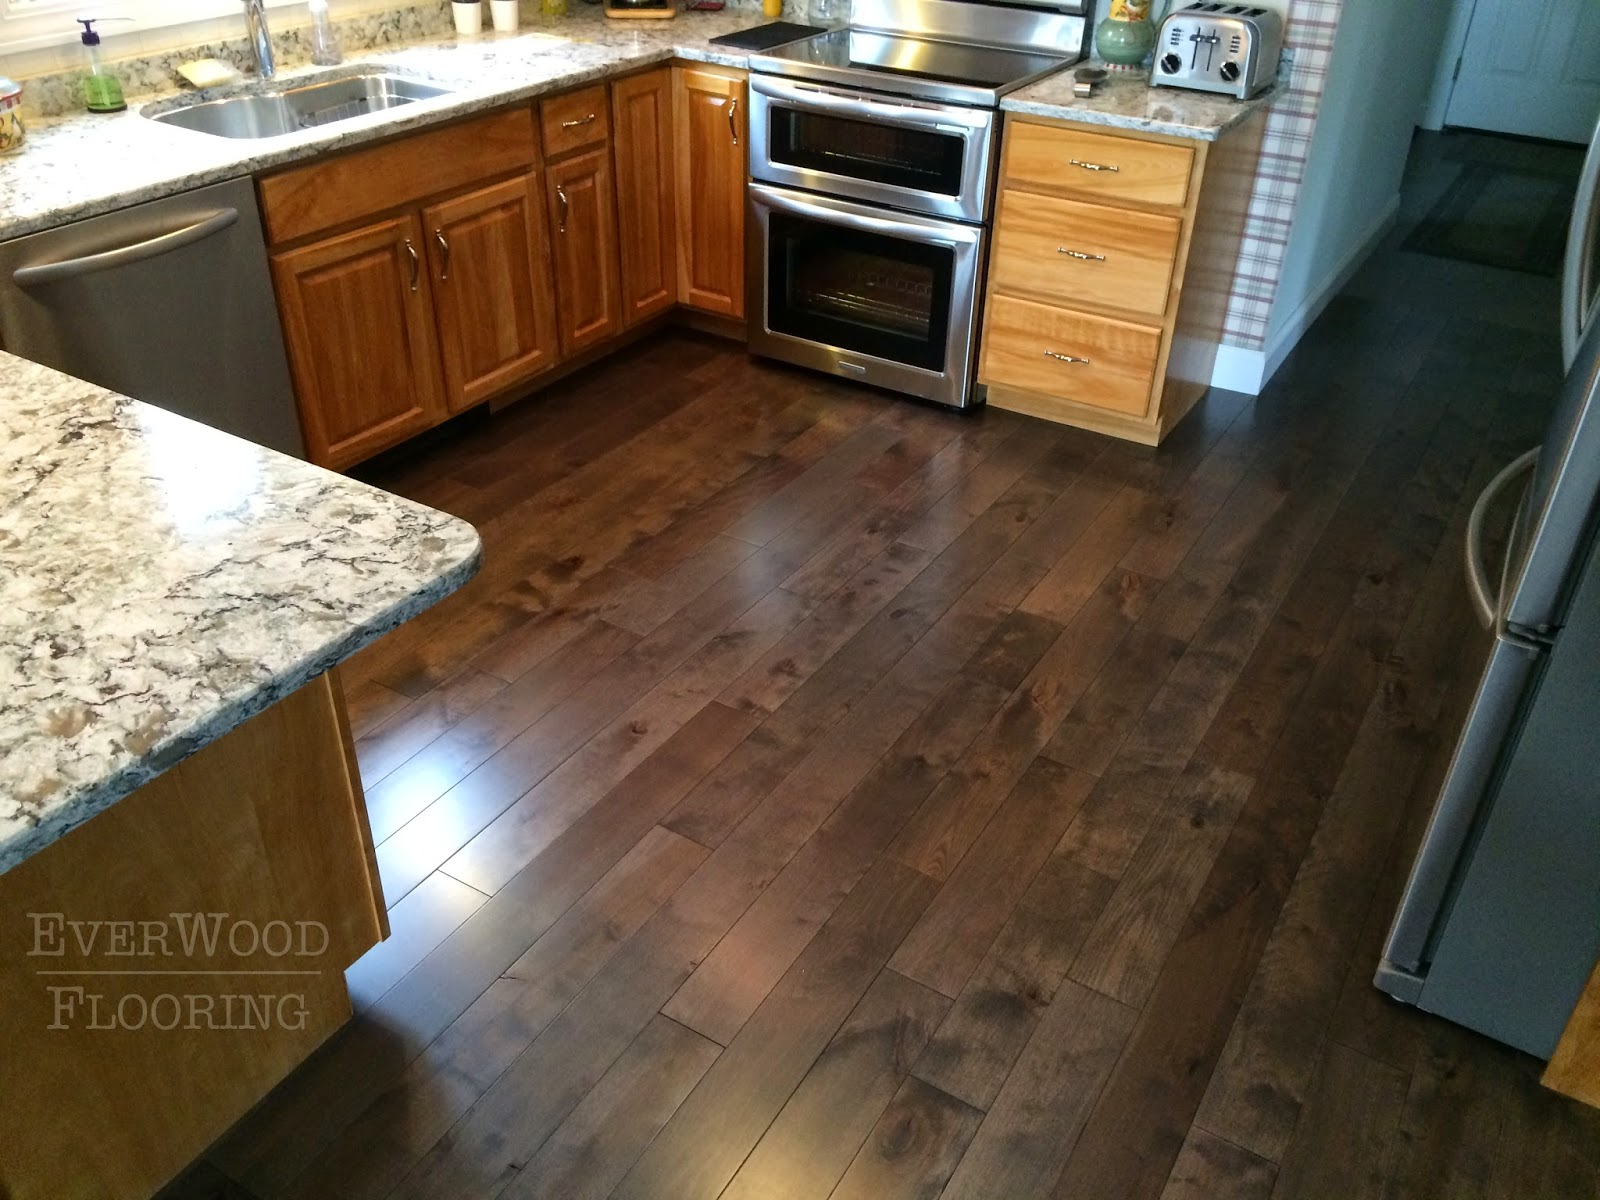 Everwood flooring project profiles prefinished birch wood for Homewood flooring